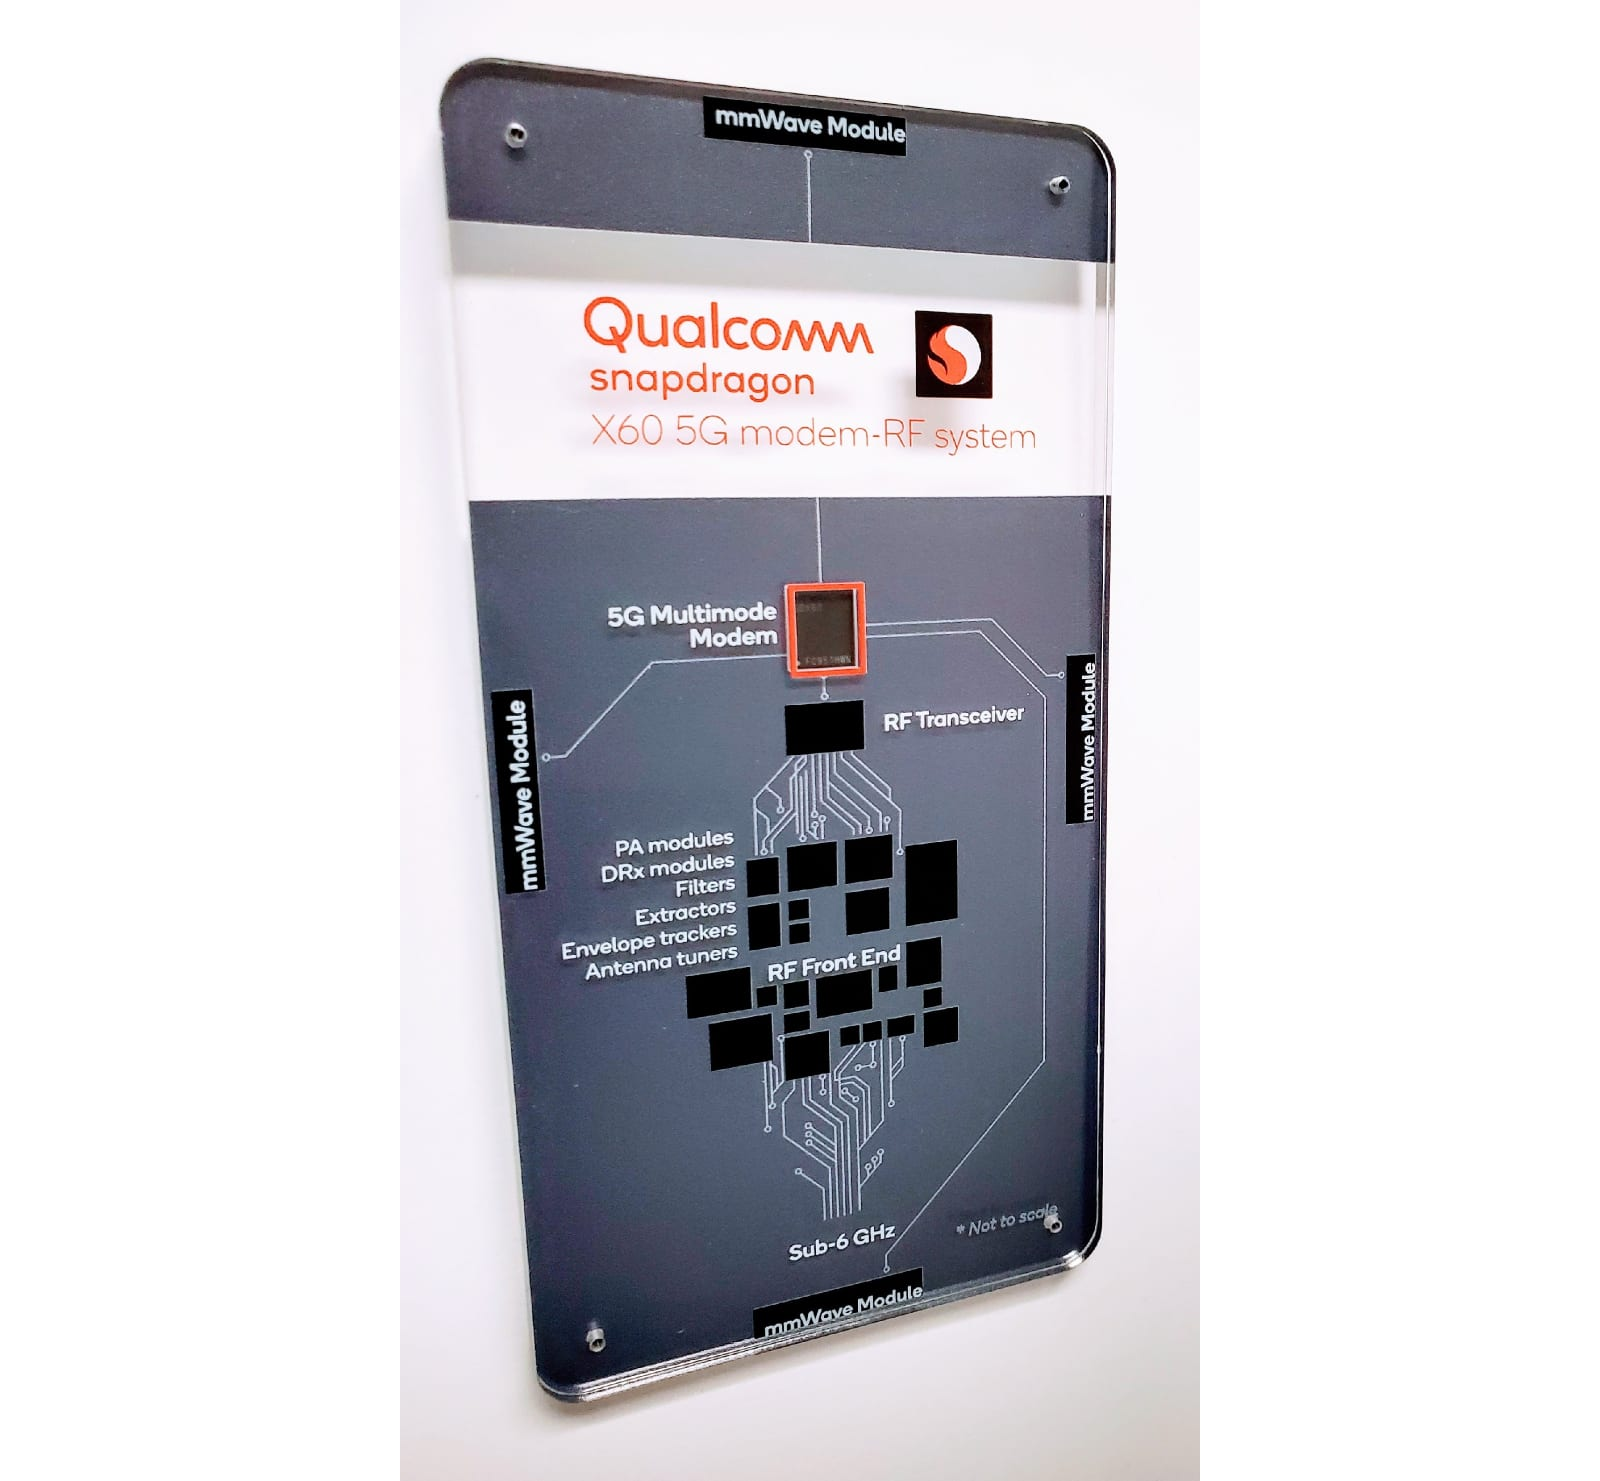 dims?crop=3200%2C2962%2C0%2C0&quality=85&format=jpg&resize=1600%2C1481&image_uri=https%3A%2F%2Fs.yimg Qualcomm guarantees 5G 'with fewer hurdles' on its newest modem